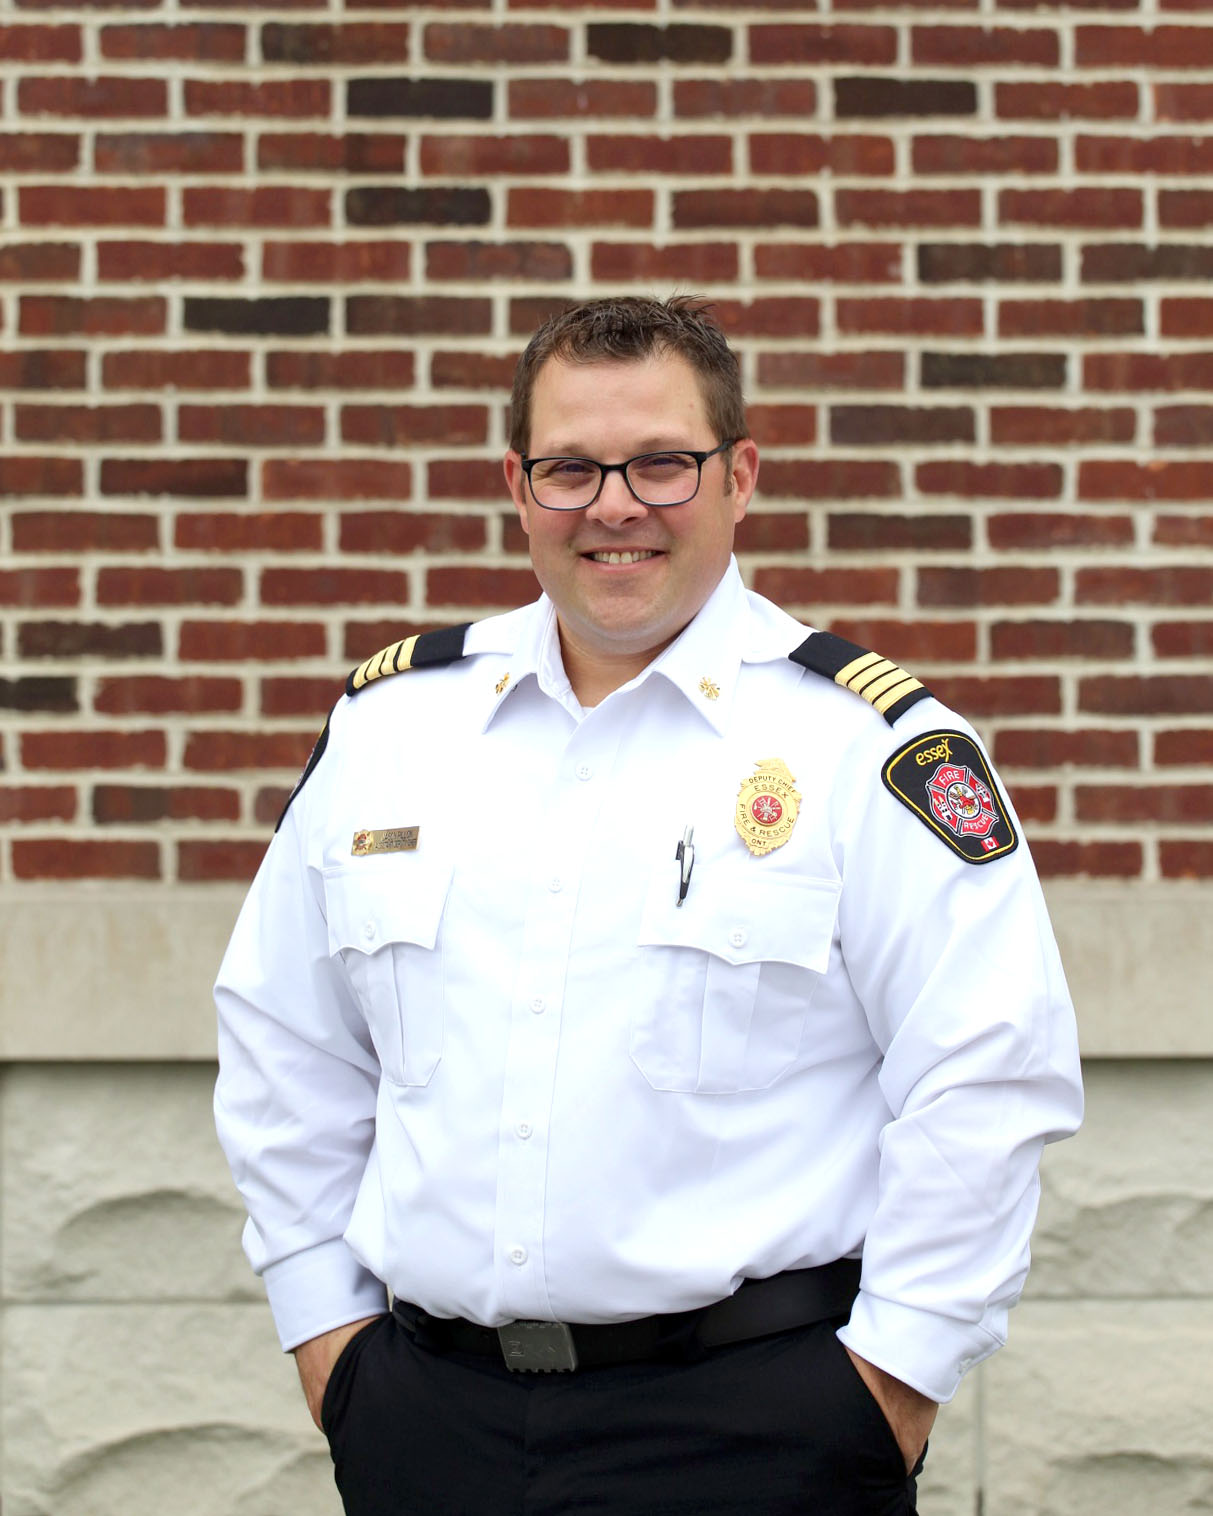 Portrait of Deputy Fire Chief Jason Pillon in white dress uniform with brick/stone wall in background.